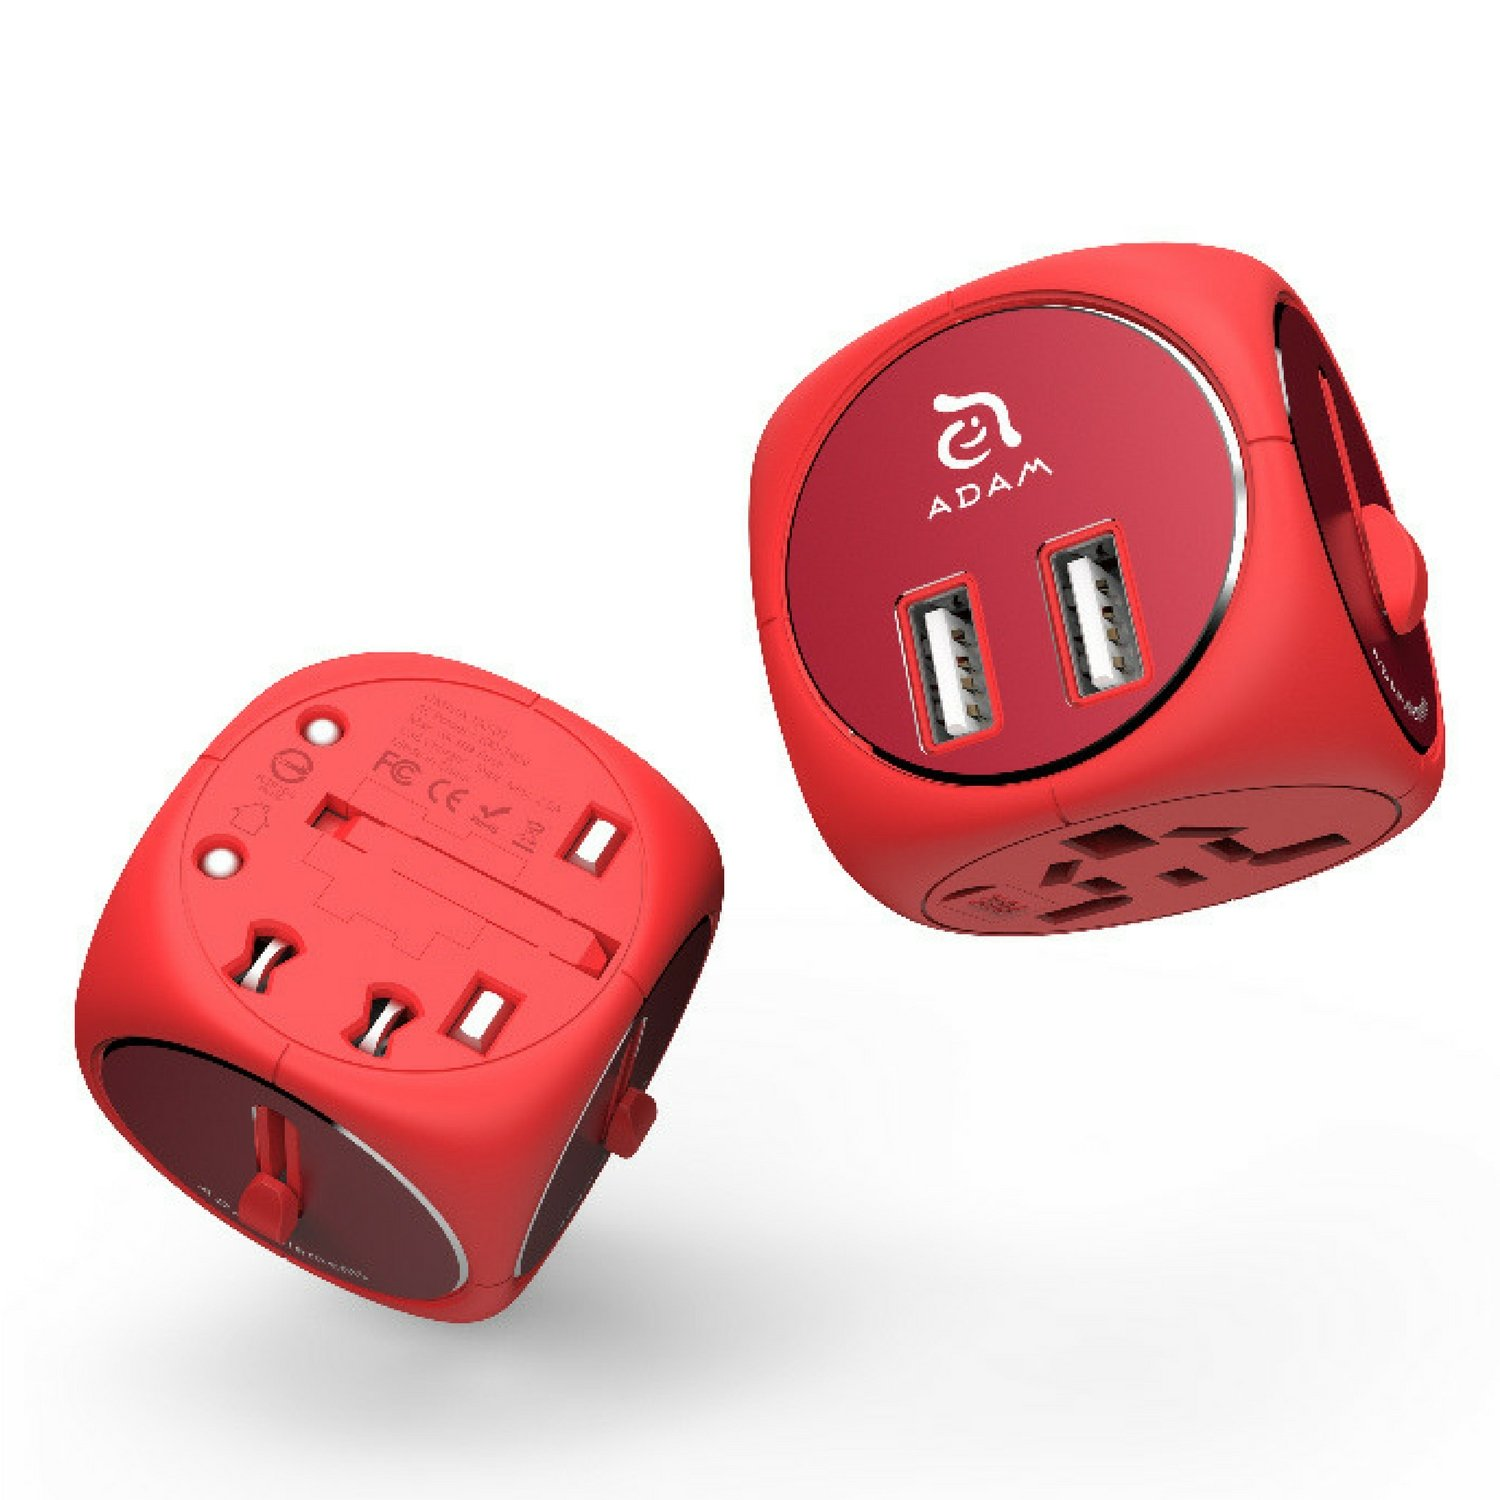 Adapter Converter for International Travel - Plug in Outlet for Power - Universal Dual USB Charger - Charge Cell Phone in Europe, USA, UK, AU & More - Omnia TA502 Red